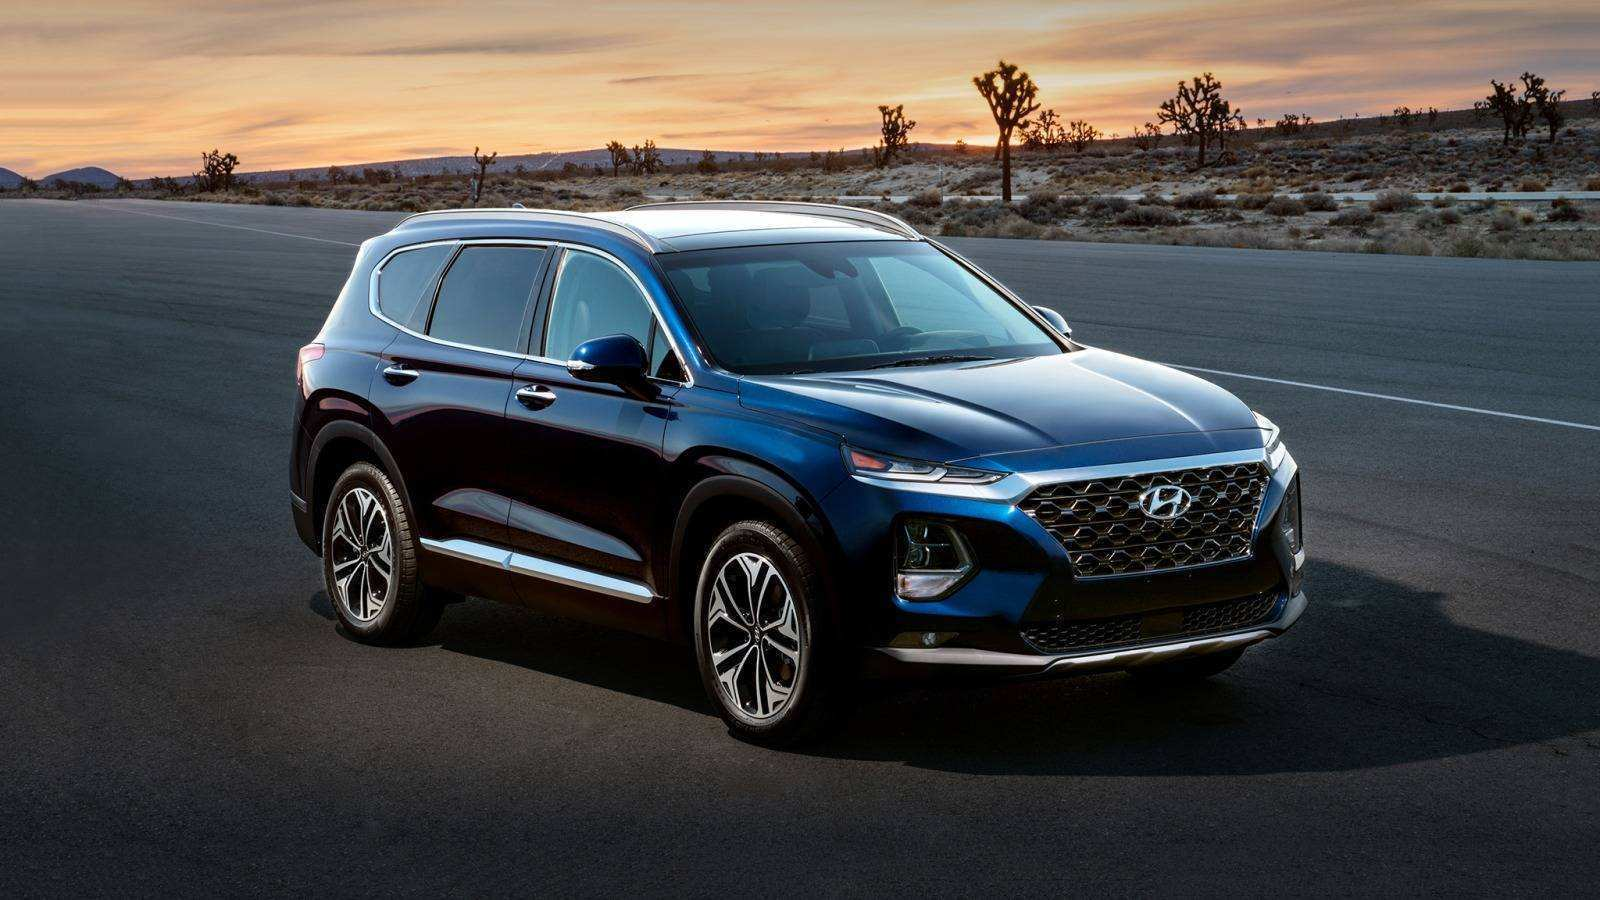 93 Concept of 2019 Hyundai Santa Fe Sport Redesign First Drive for 2019 Hyundai Santa Fe Sport Redesign